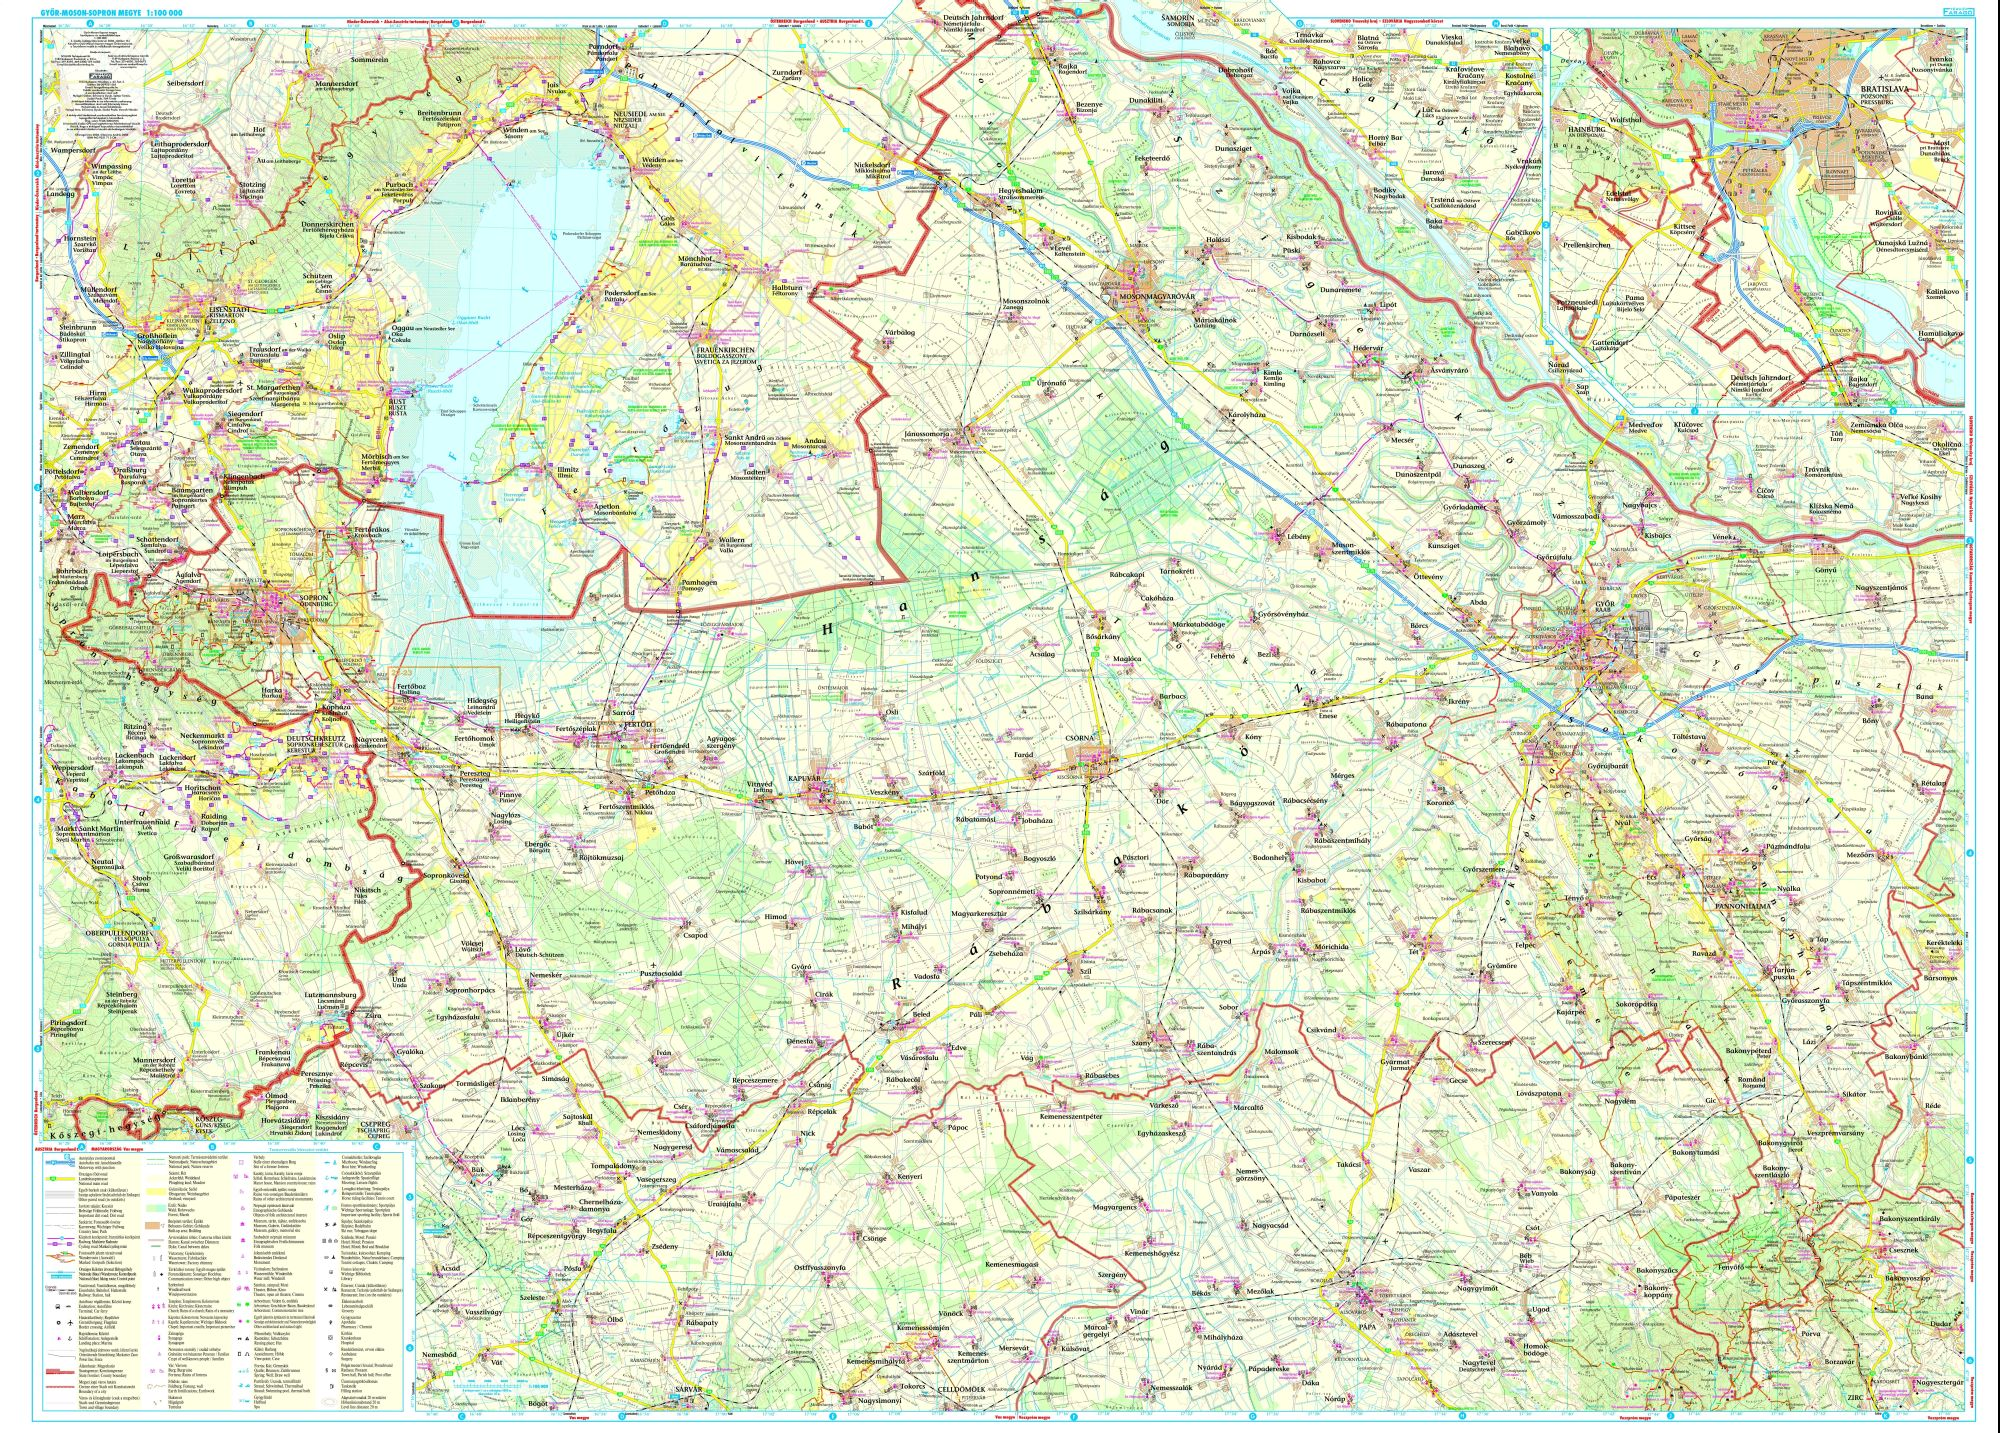 Győr-Moson-Sopron county: area covered by the main map 1:100.000